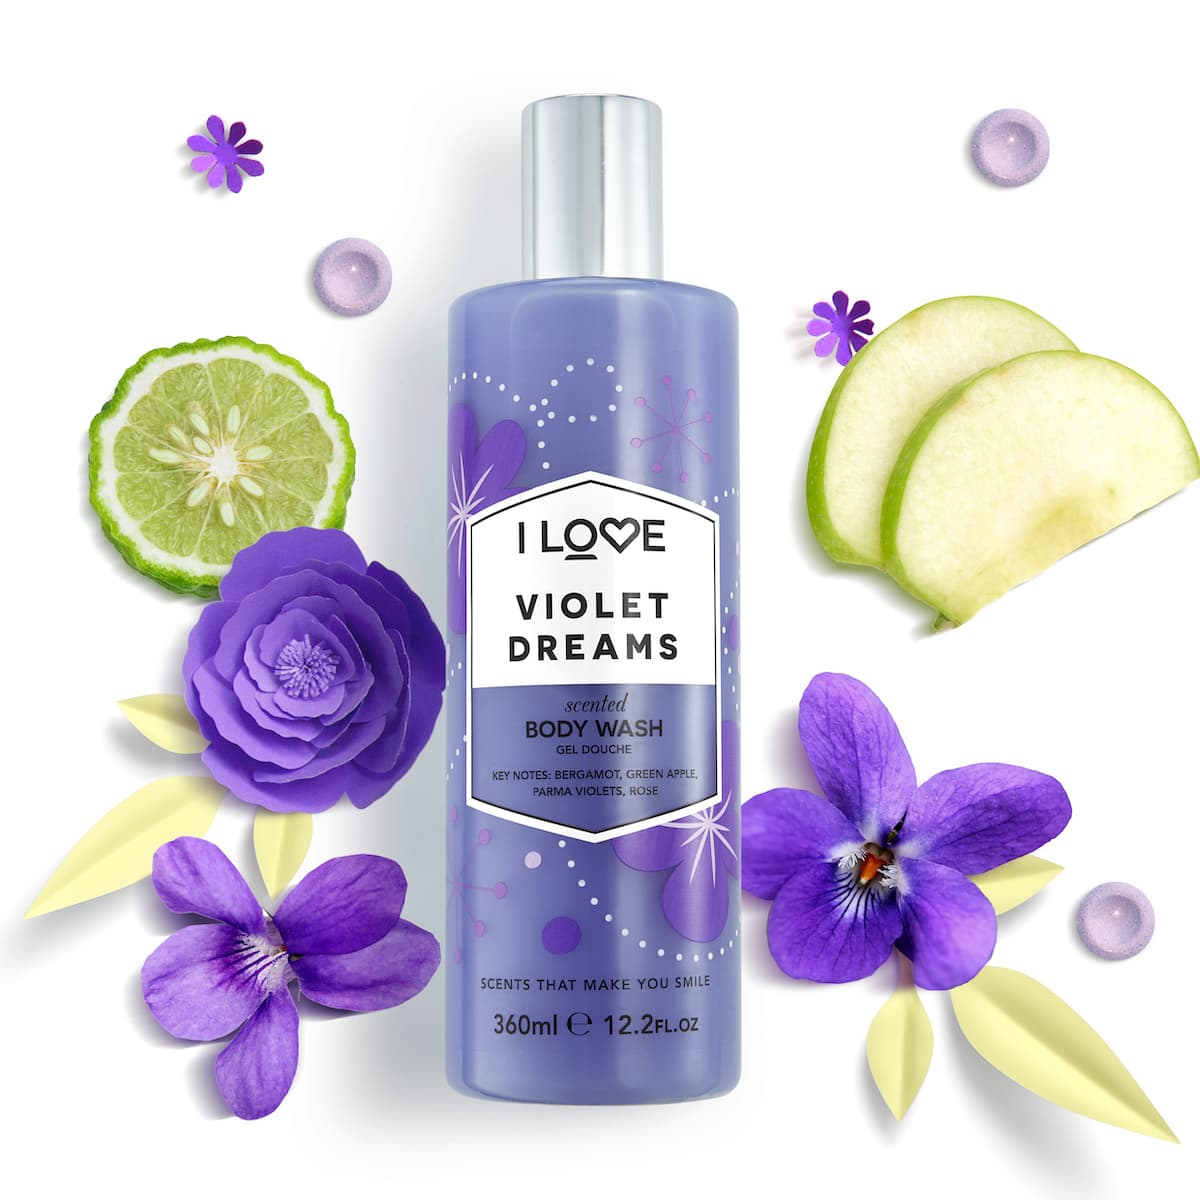 Violet Dreams Bodywash 360ml